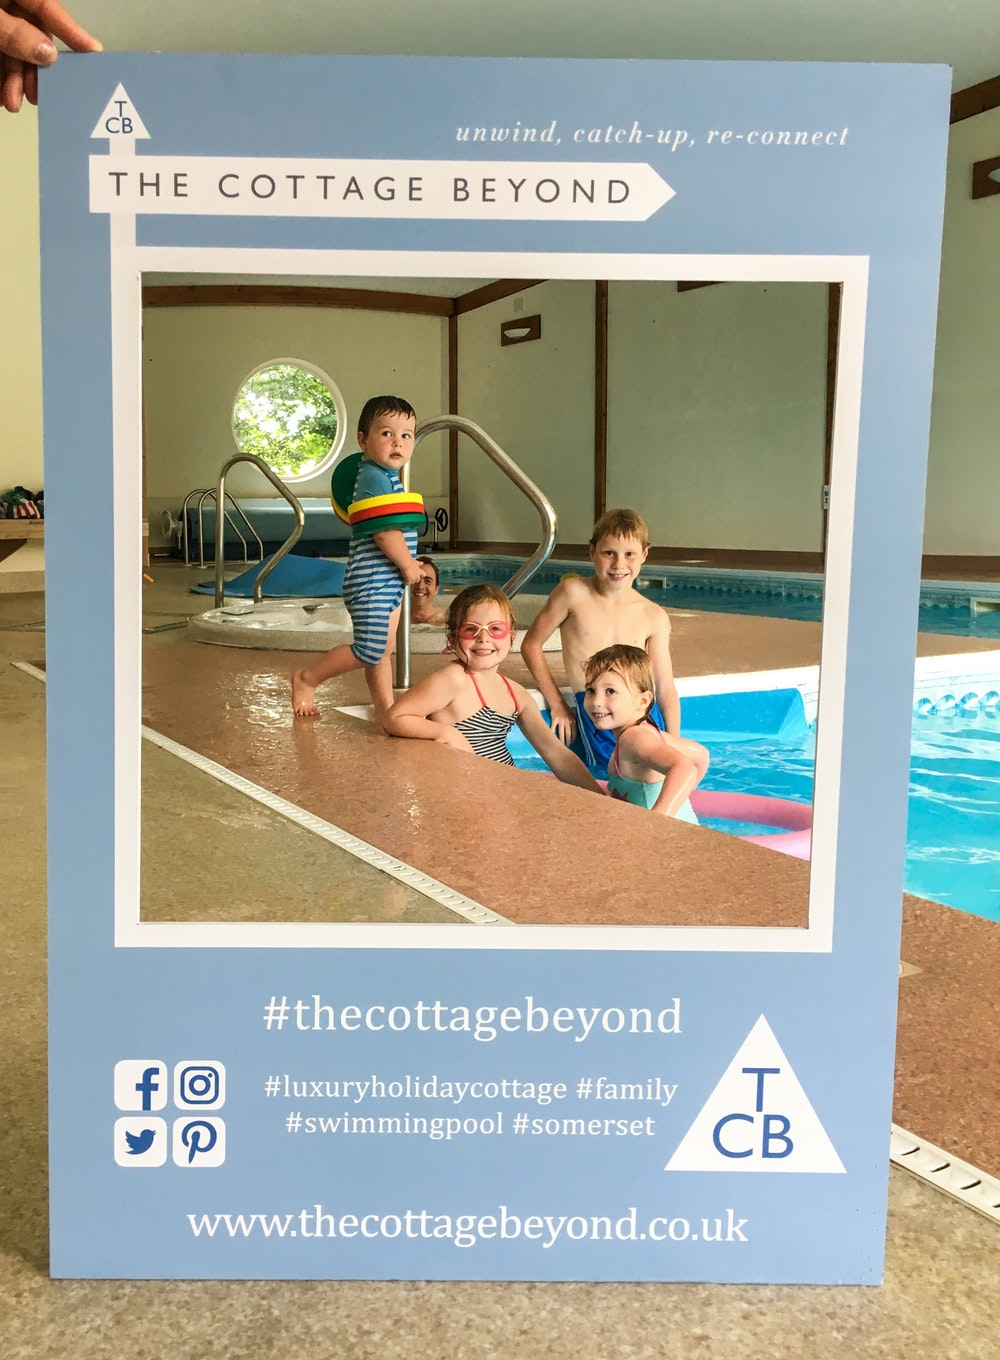 TCB's selfie board in the swimming pool